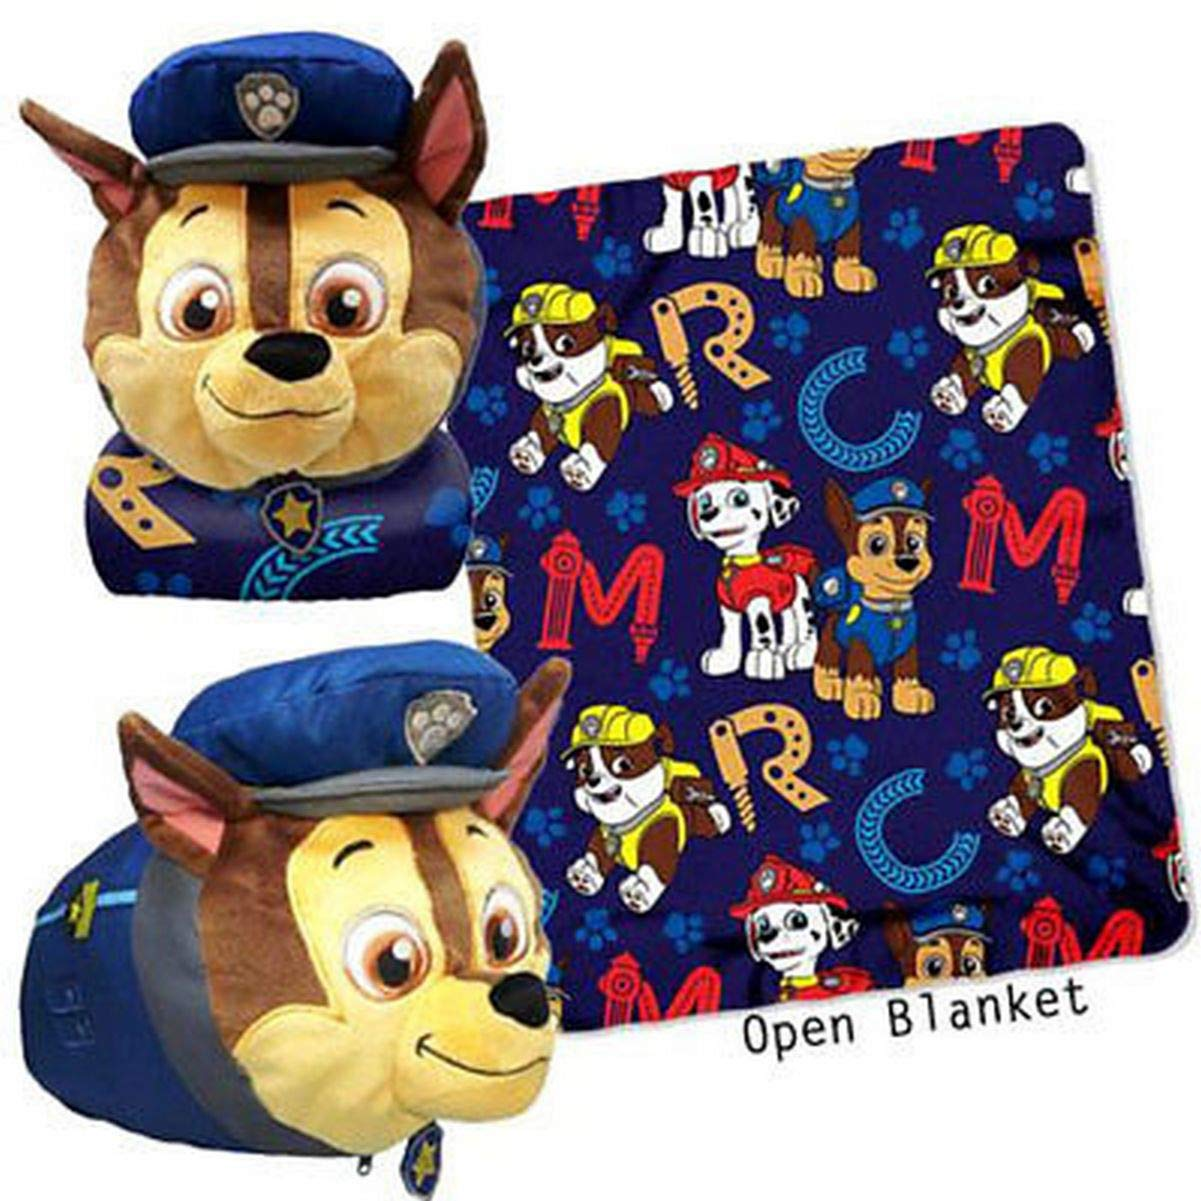 Paw Patrol Rescue ABC Mush' Um Zip Pillow and Throw Set